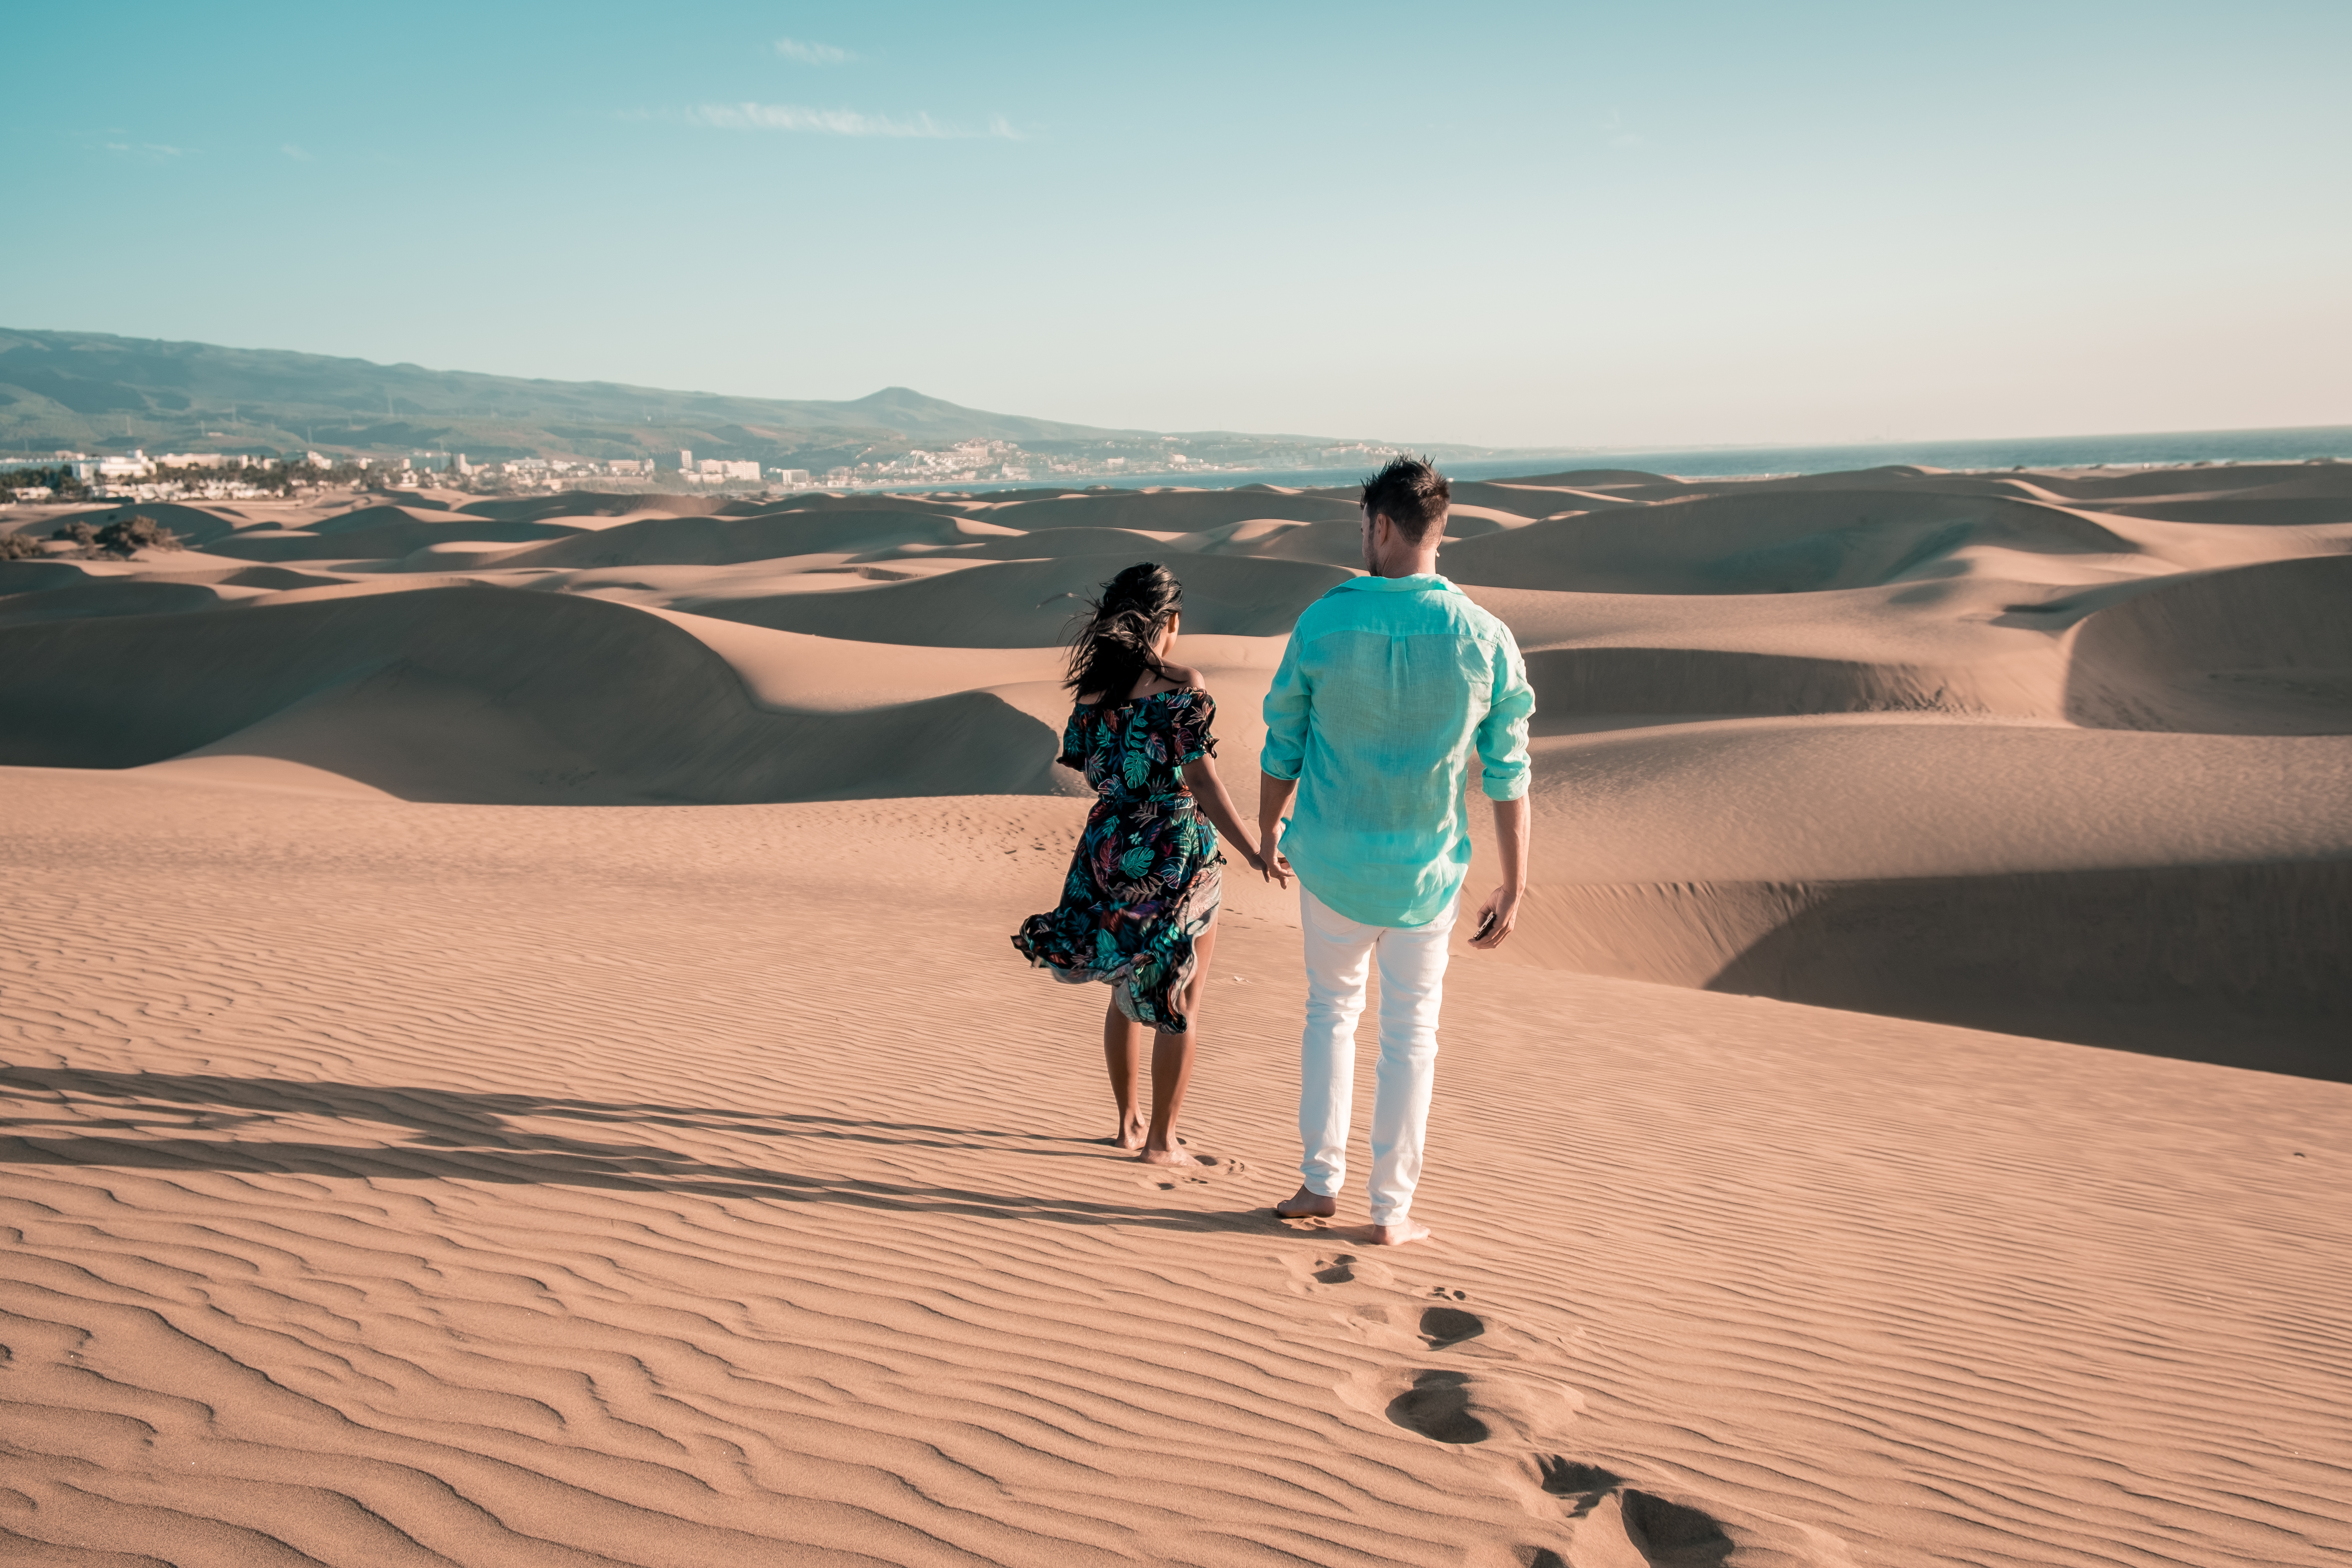 Portugal Getaways travel agency offers vacations packages to Gran Canaria in Spain.